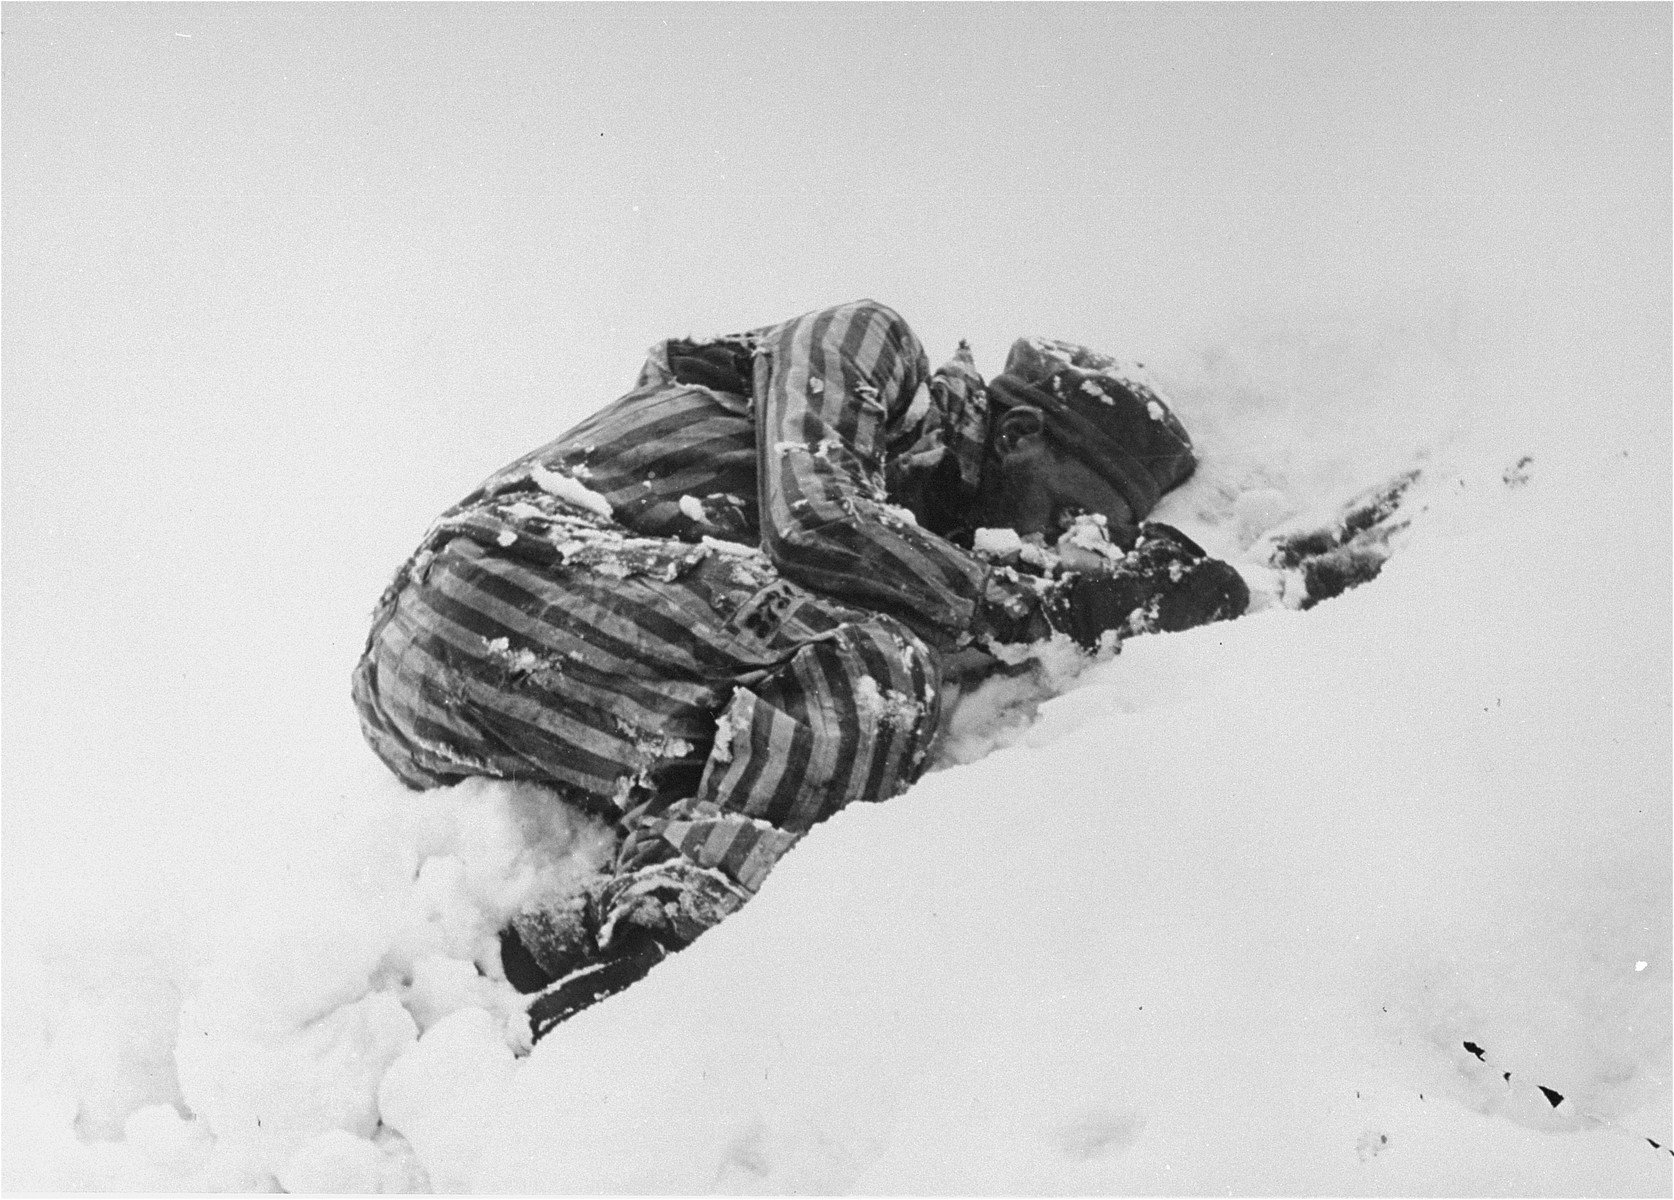 The frozen body of a Jewish prisoner who was beaten to death by the SS lies in the snow.